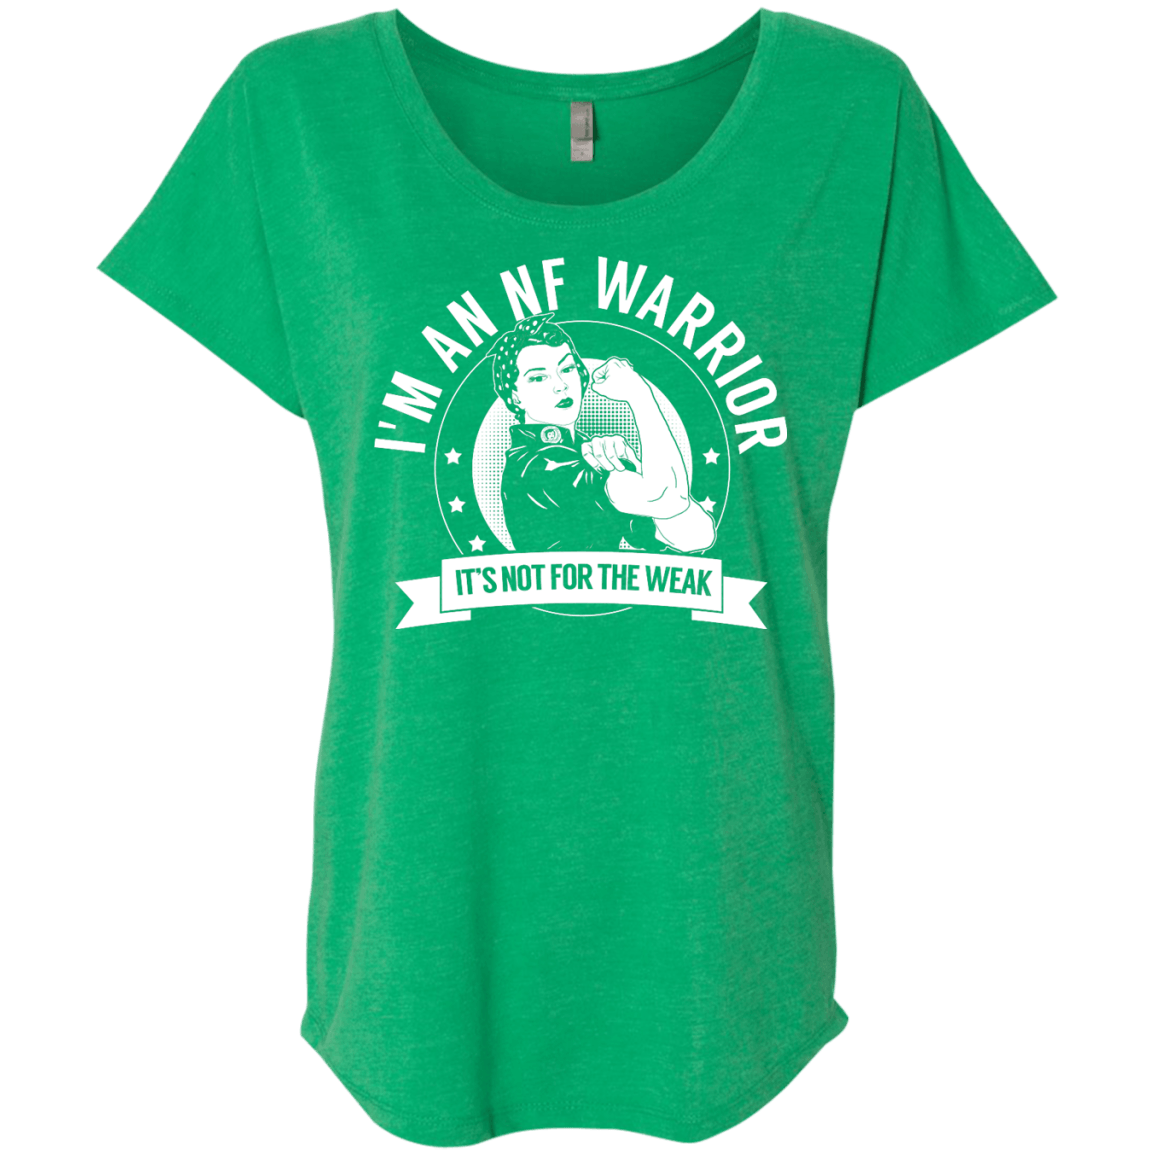 T-Shirts - Neurofibromatosis - NF Warrior Not For The Weak Dolman Sleeve